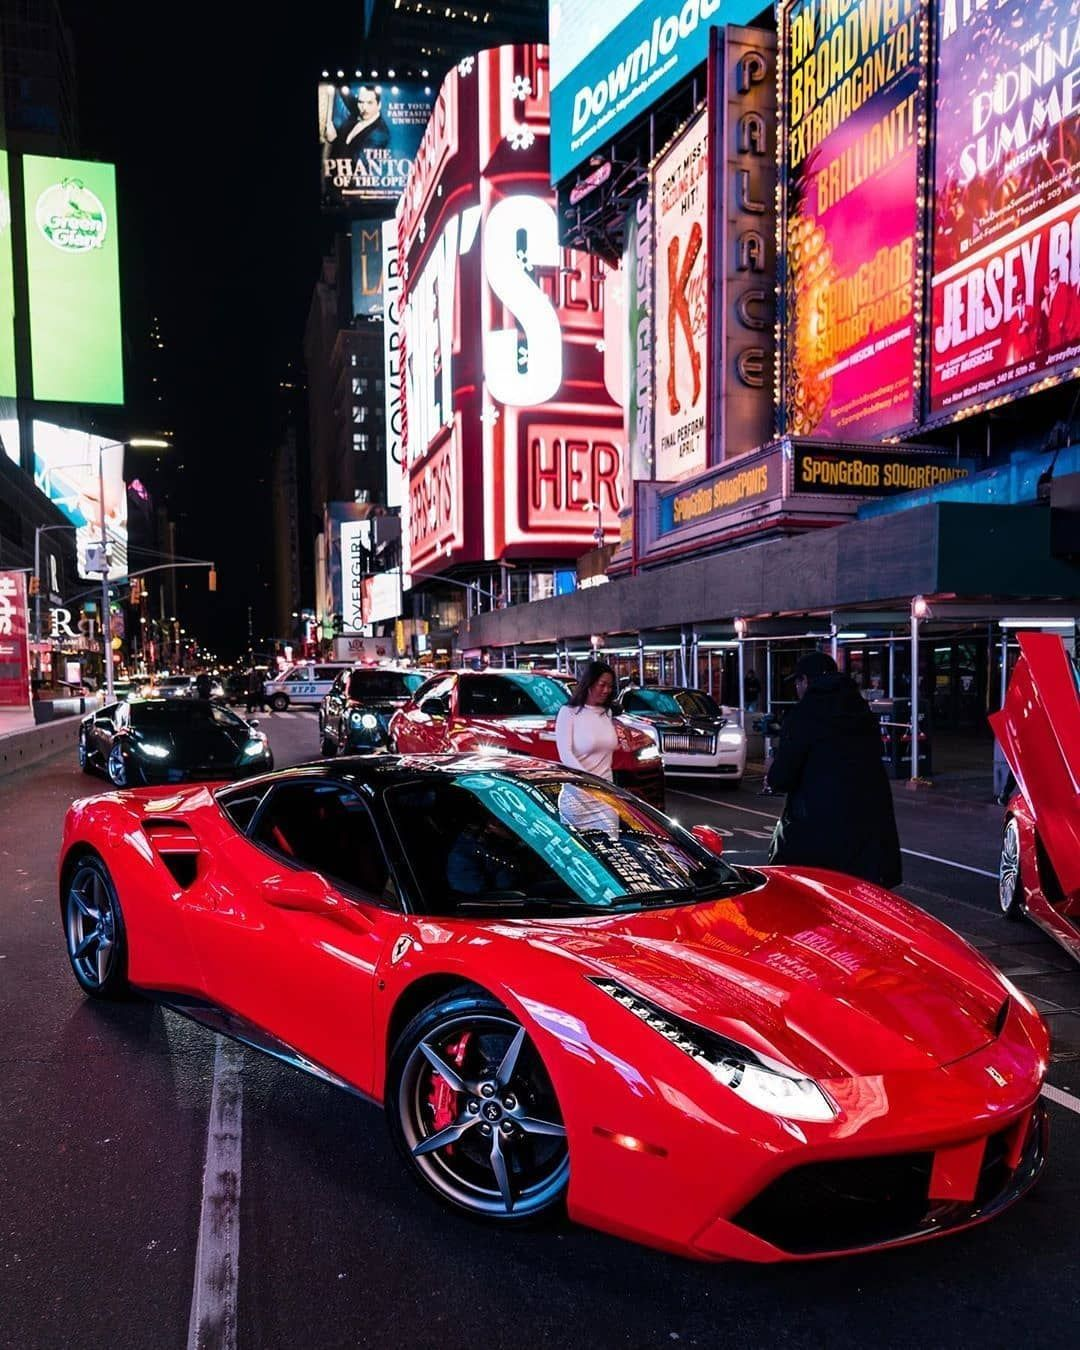 The Supercar Lifestyle Brad On Instagram Bringing New York S Times Square To A Halt Owner Rent24k By Opoli Super Cars Top Luxury Cars Dream Cars